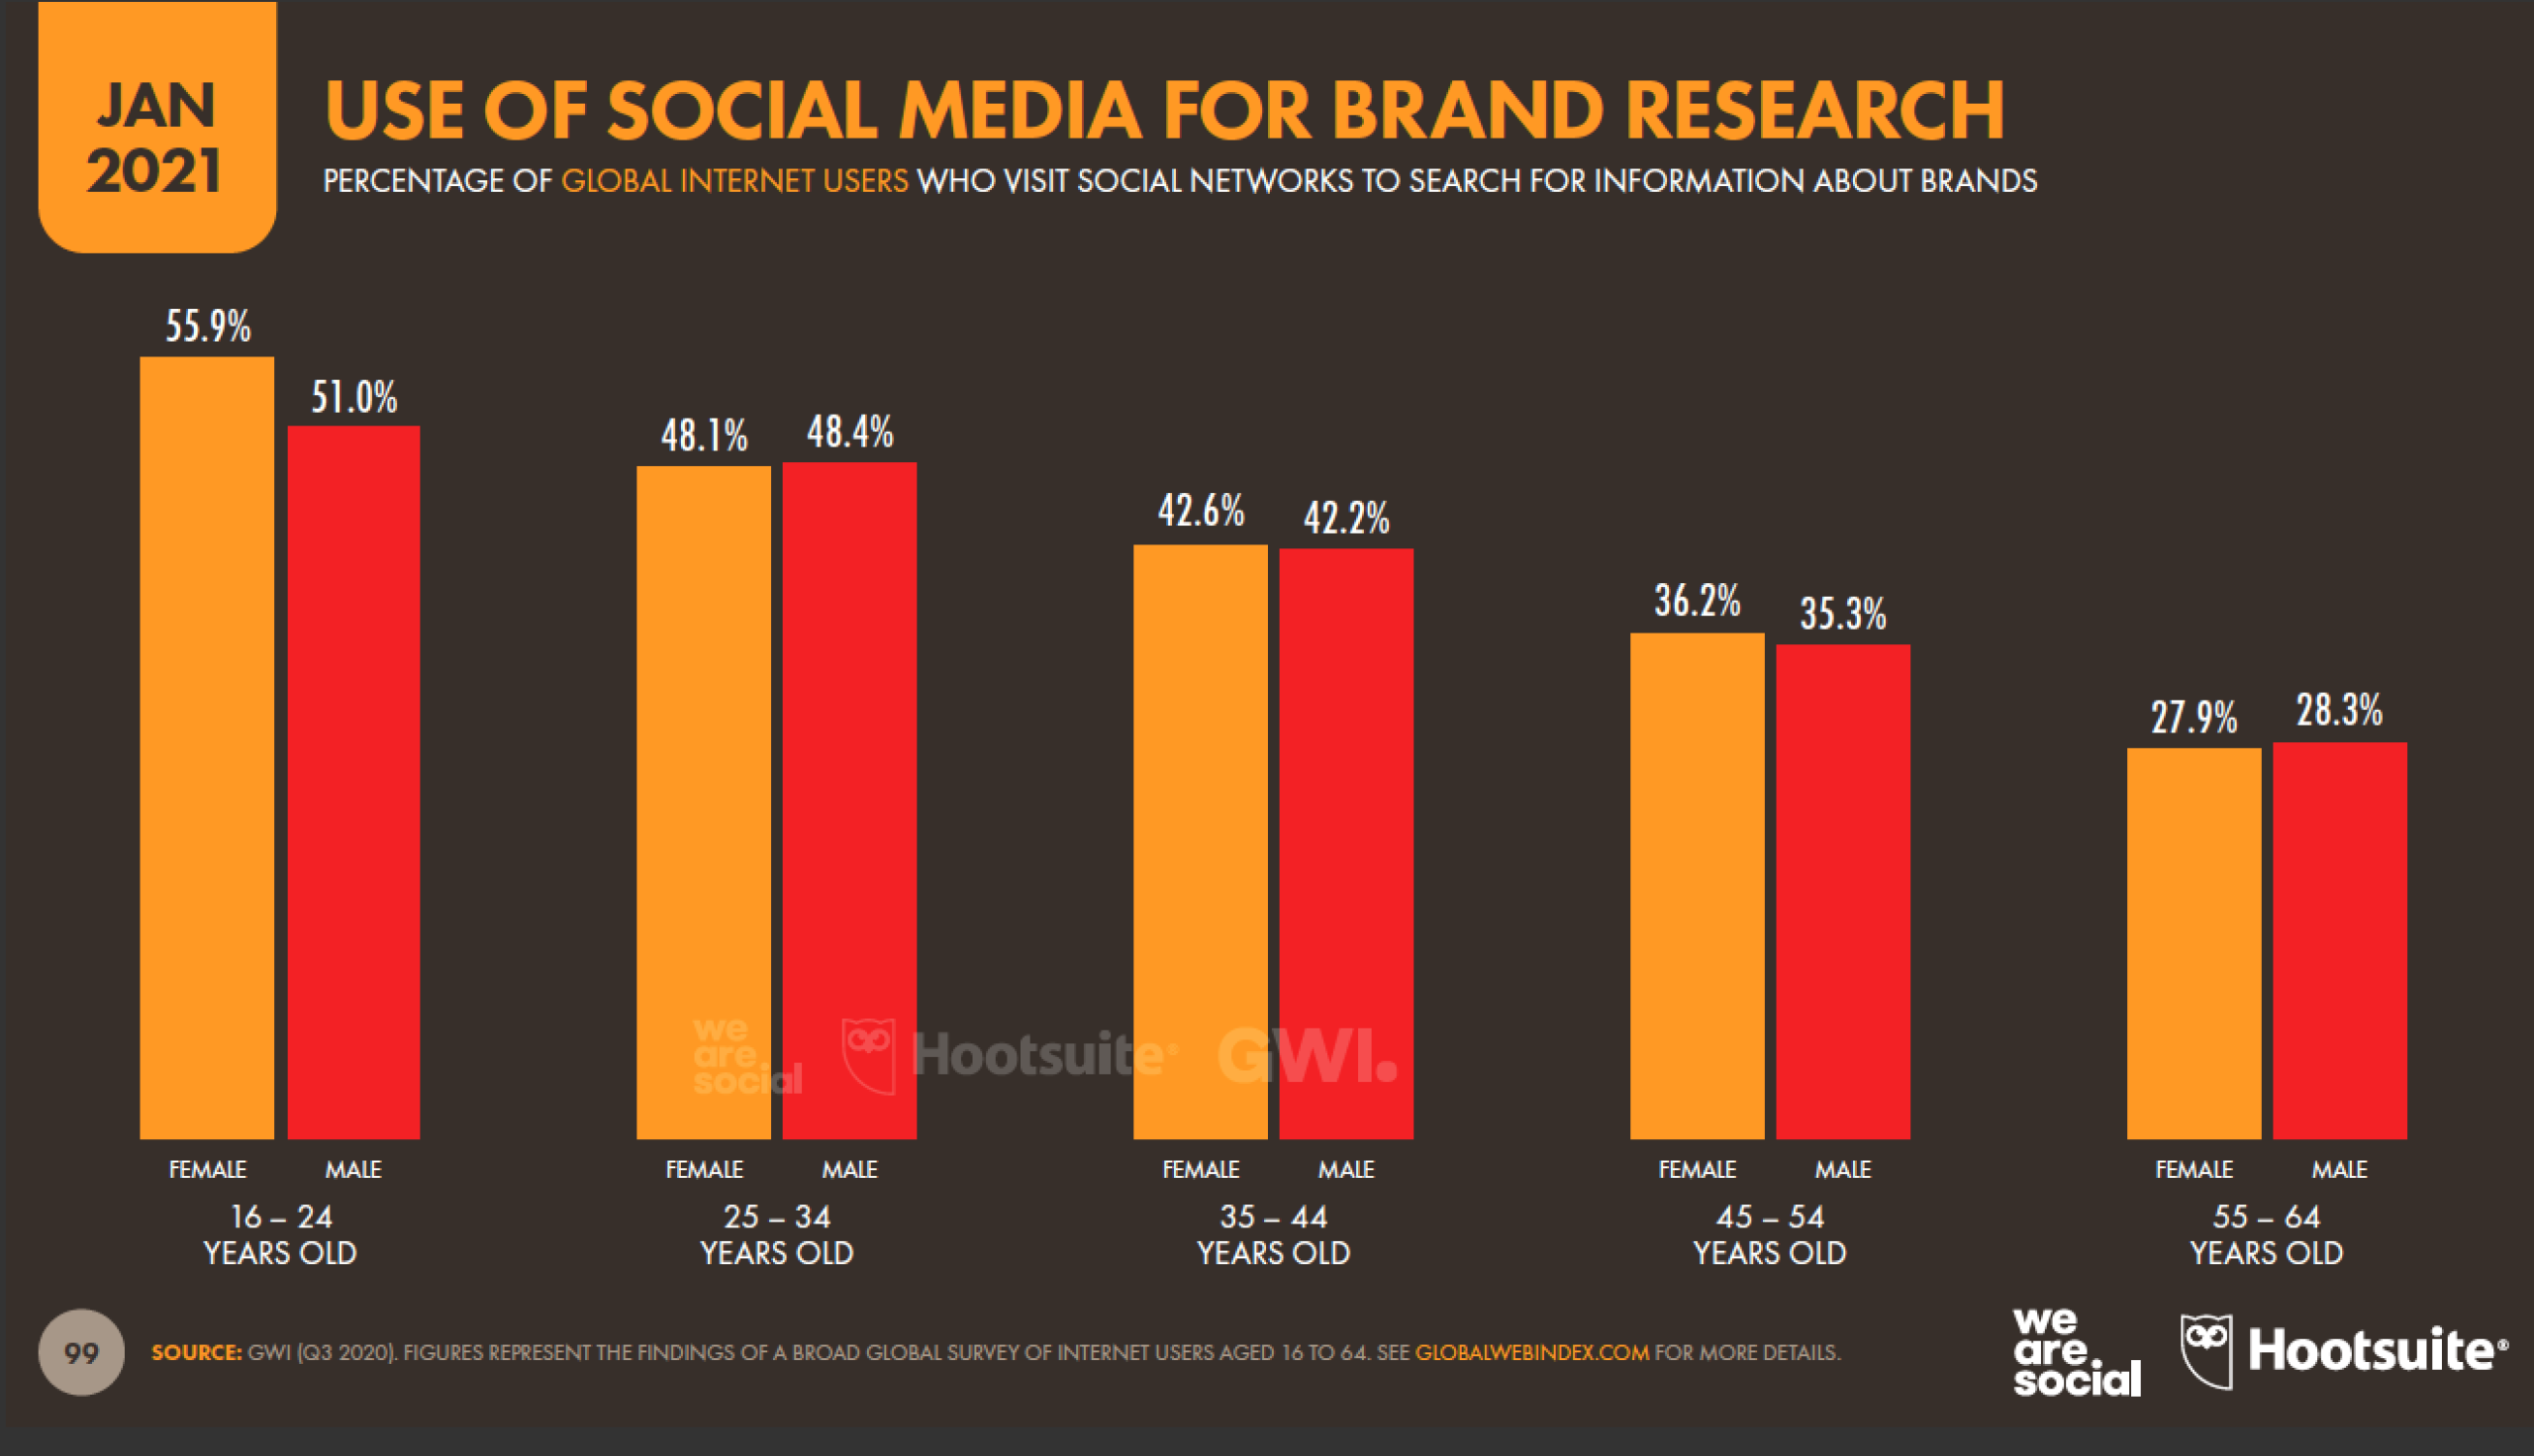 use of social media for brand research